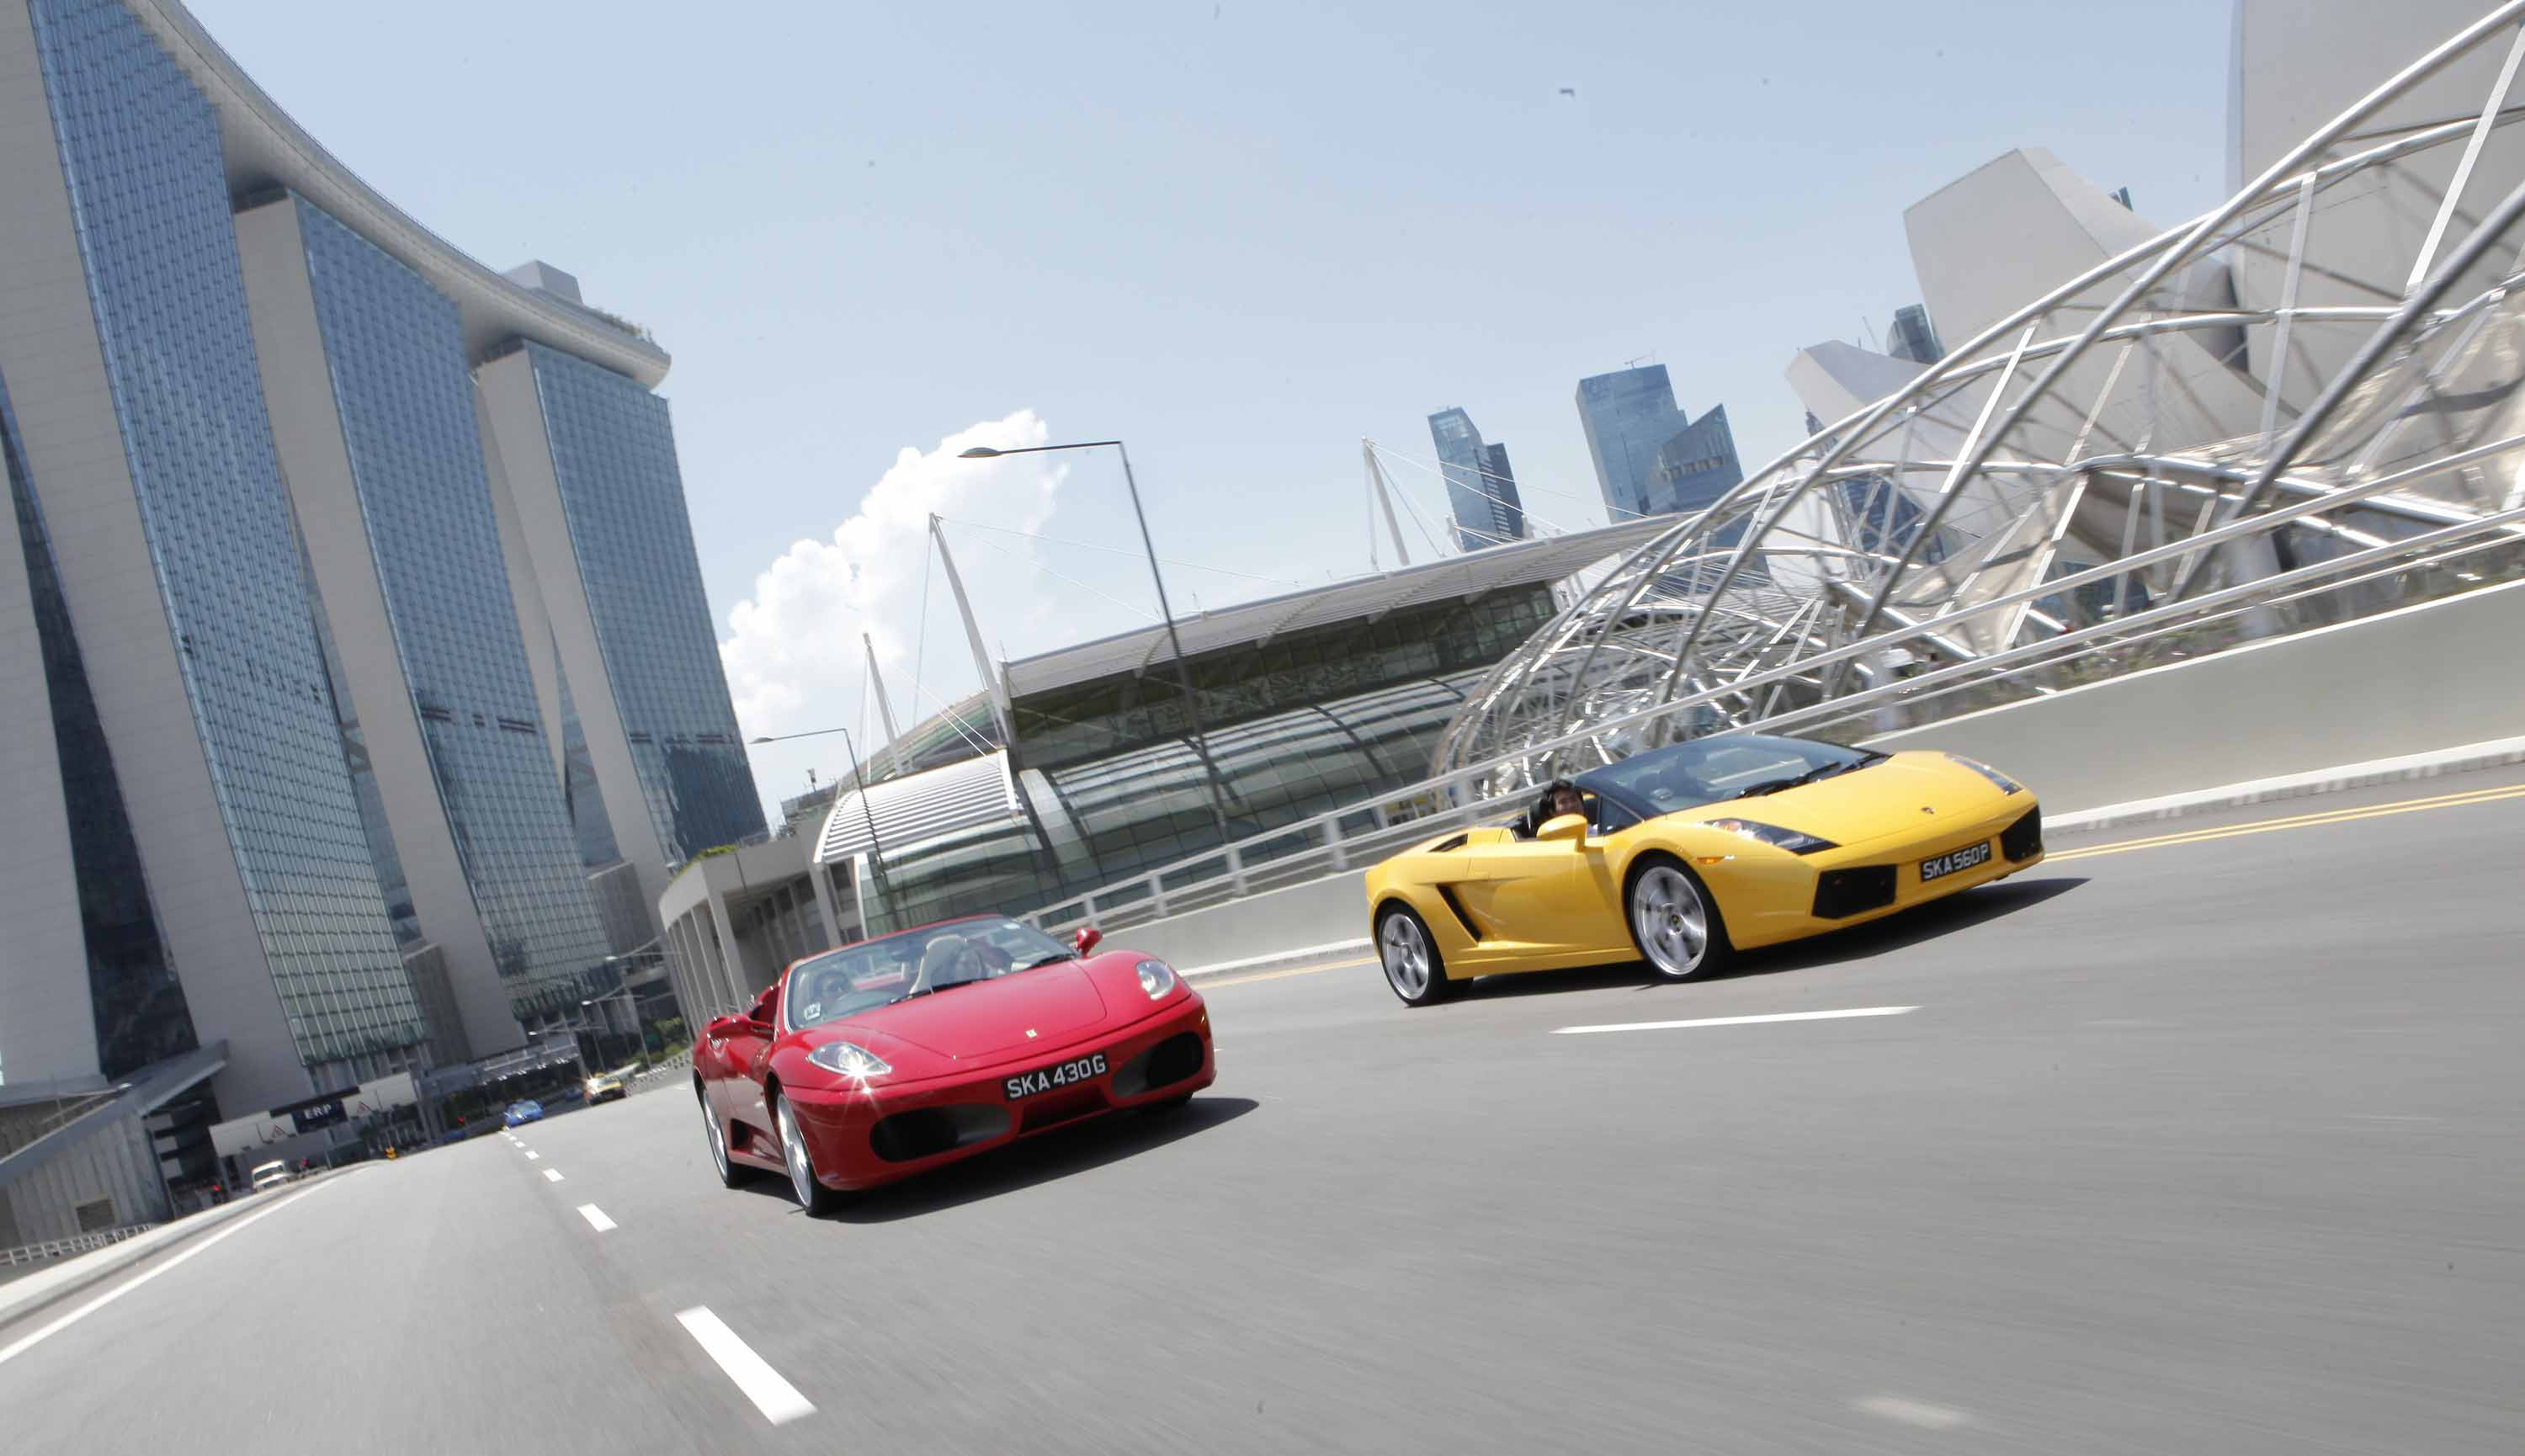 Ultimate Drive's Ferrari and Lamborghini leaving for a journey from Marina Bay Sands